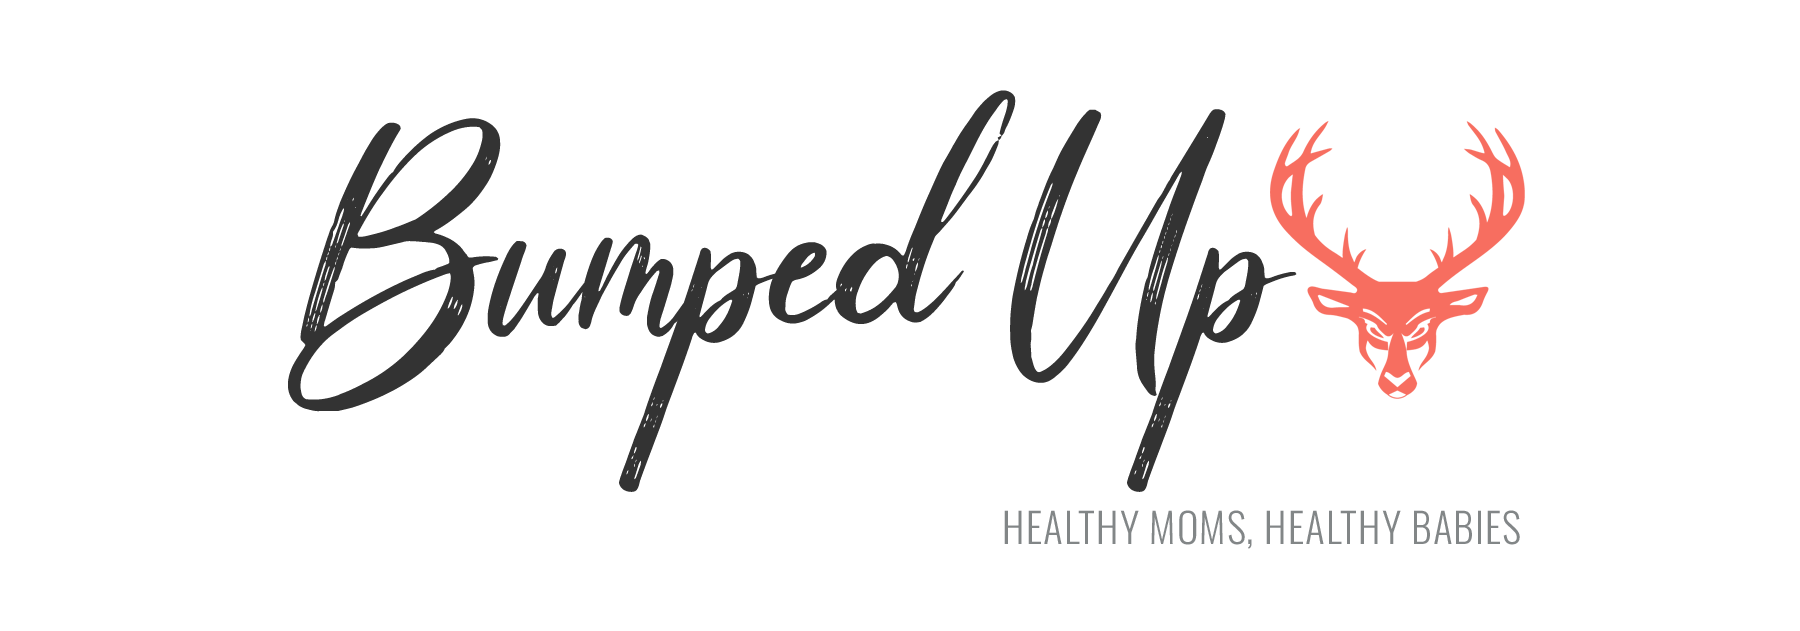 Bucked Up Logo